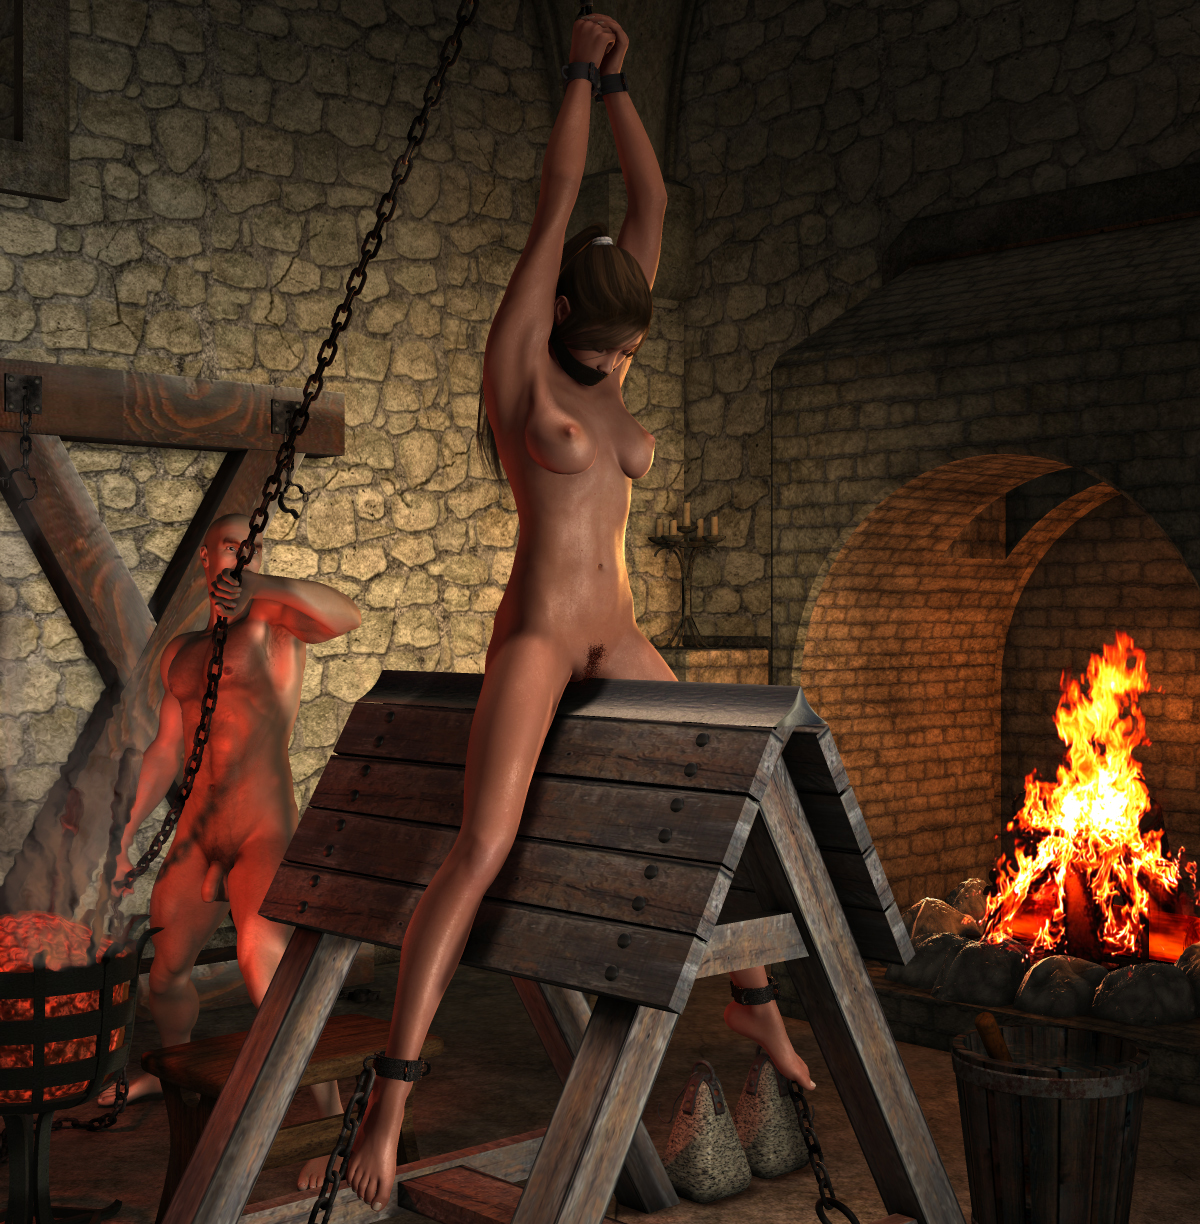 Medieval torture of naked women erotic images